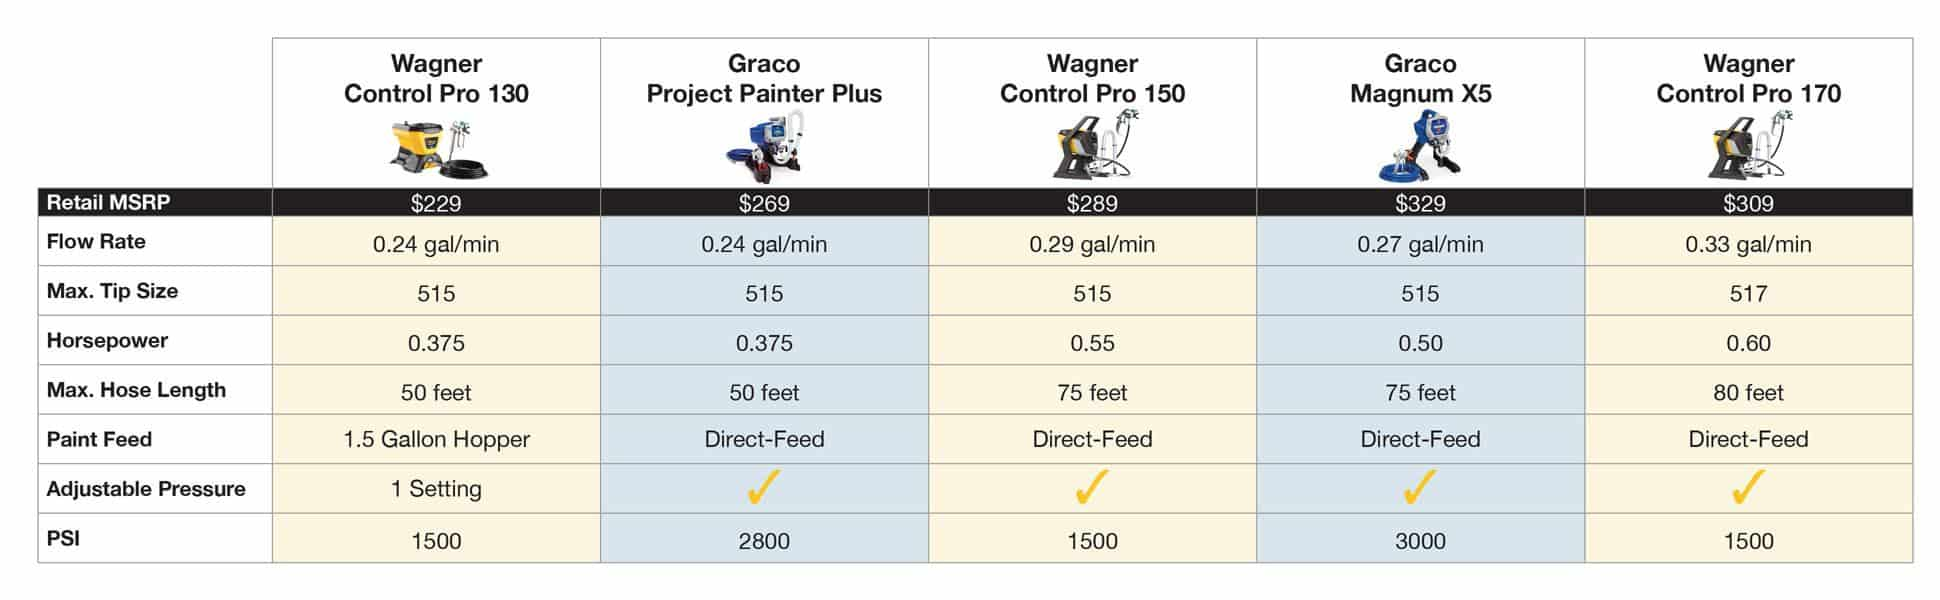 Comparison chart graphic of several models of paint sprayers.